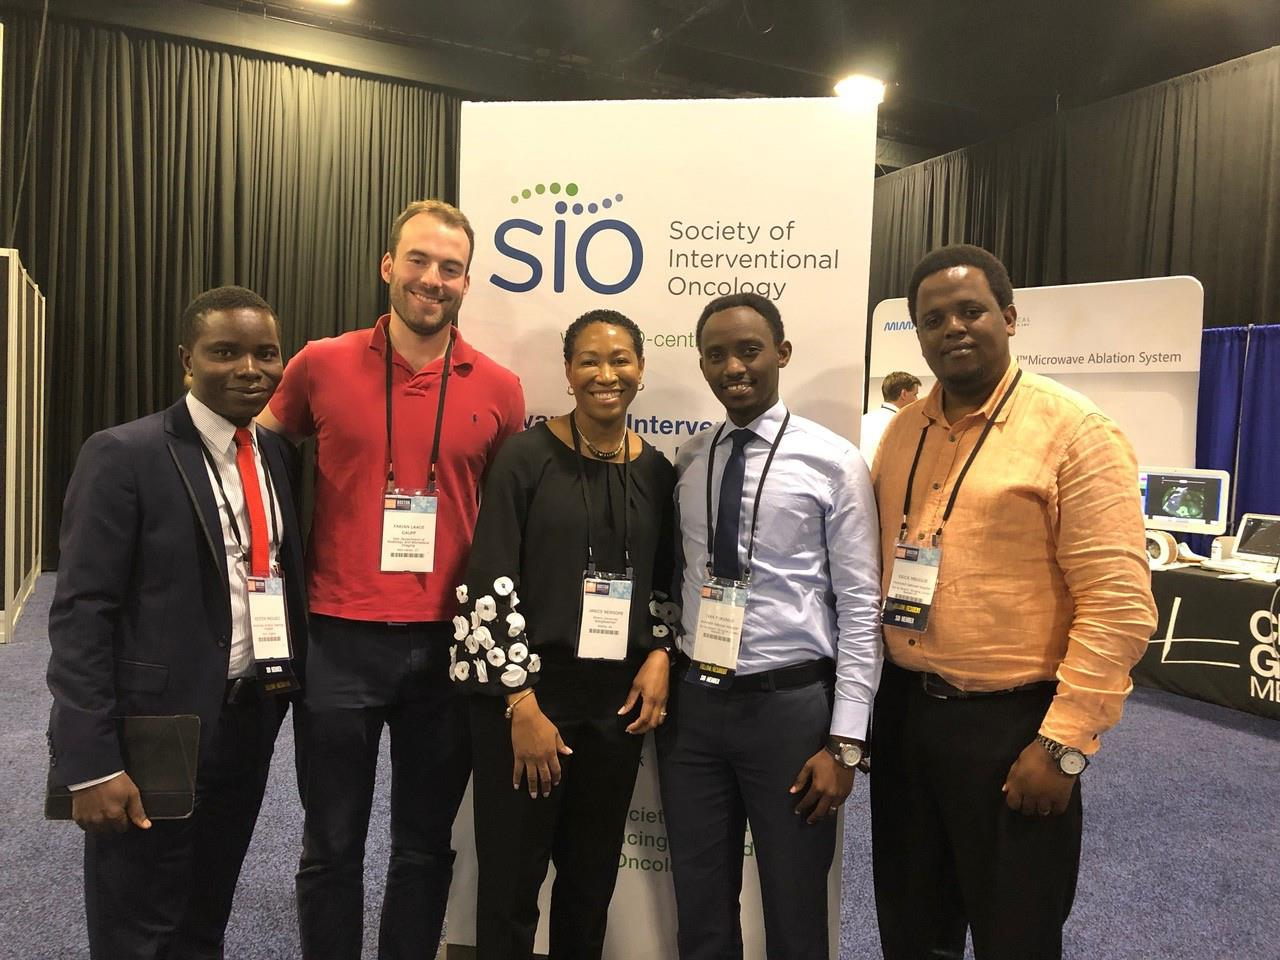 Trainees from Nigeria, Tanzania, and the US with Dr. Newsome from Emory at WCIO 2018